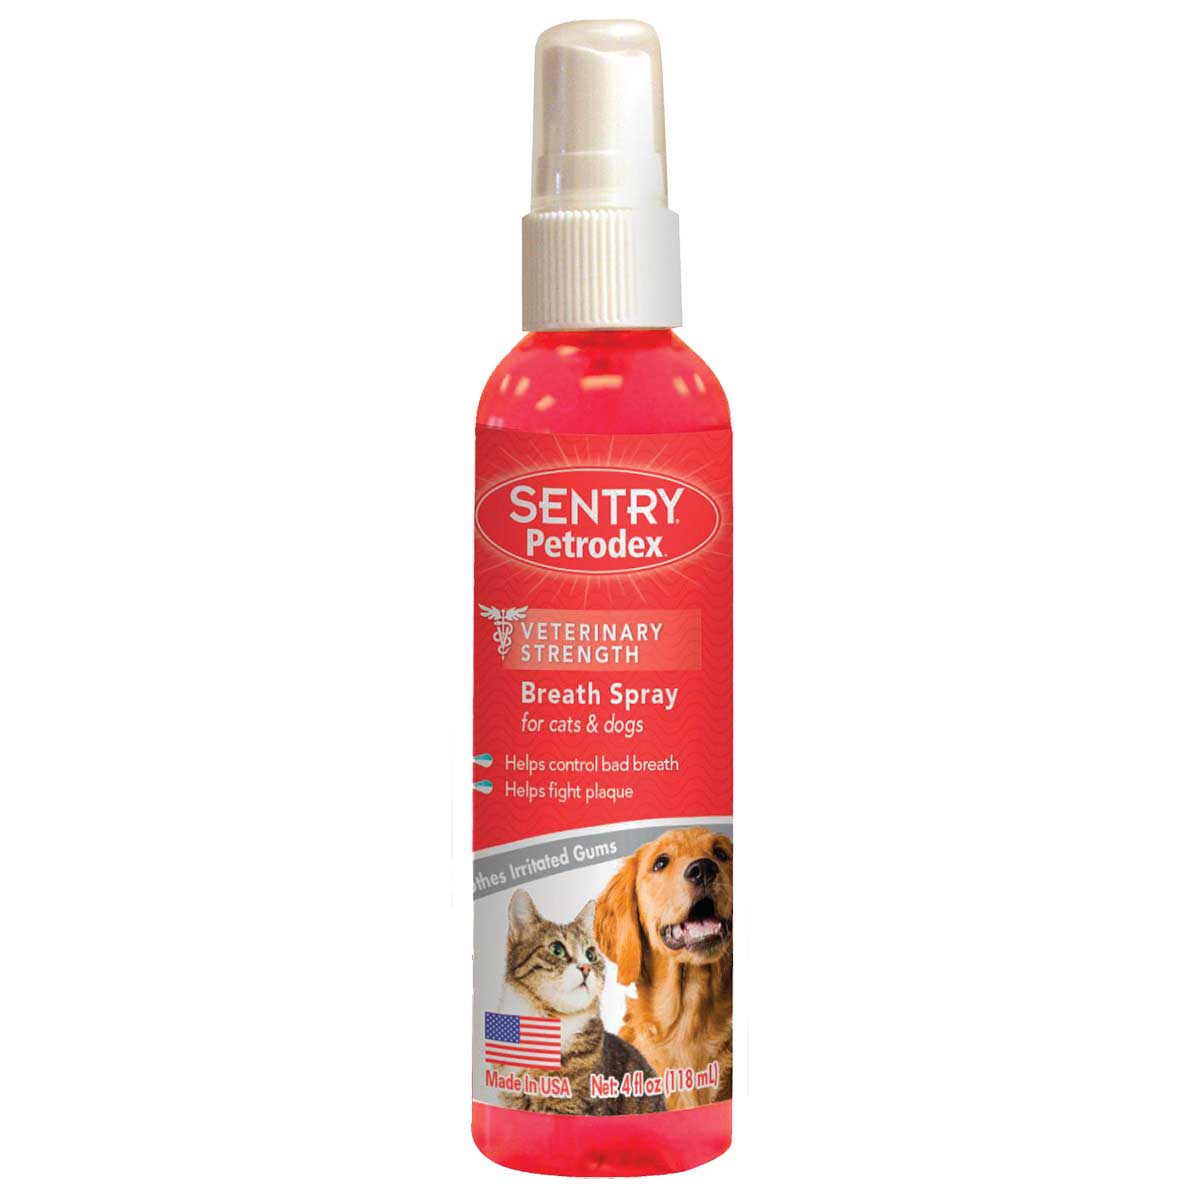 Sentry Vet Strength Petrodex Breath Spray For Dogs and Cats